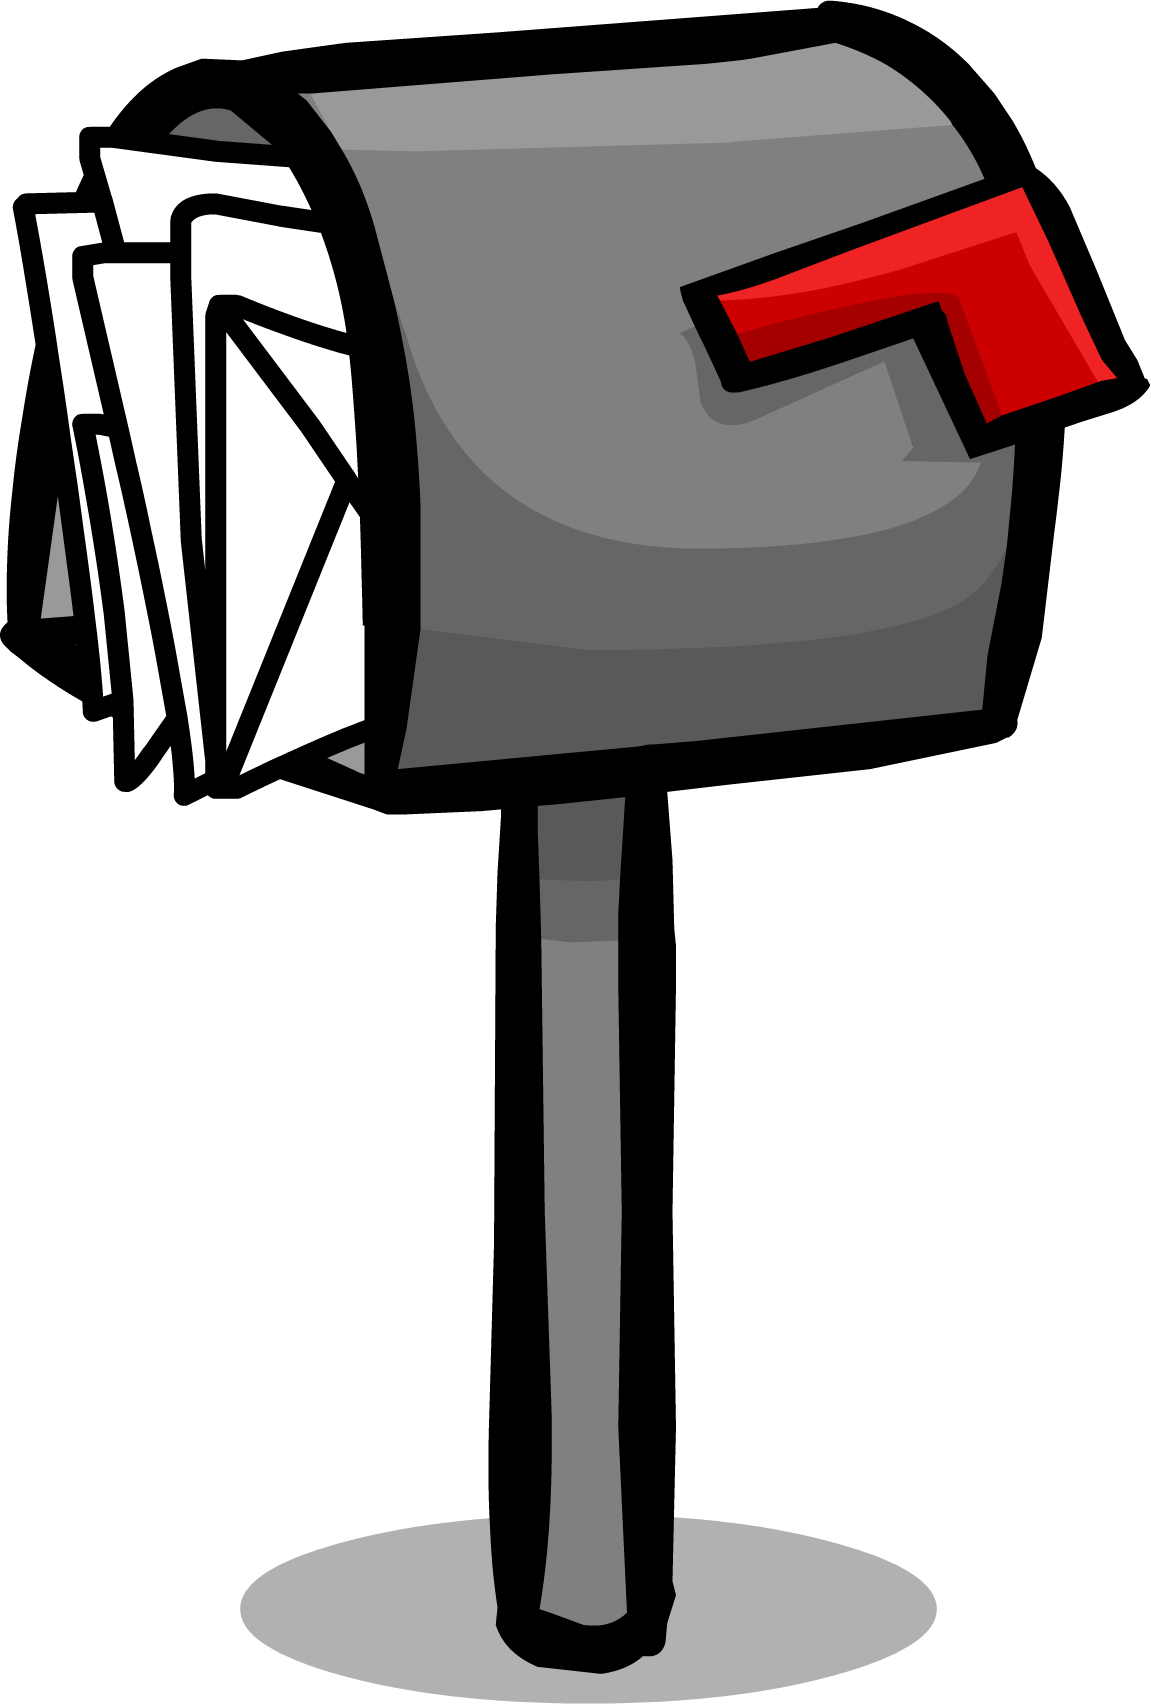 Mailbox clipart mail letter. Post box club penguin